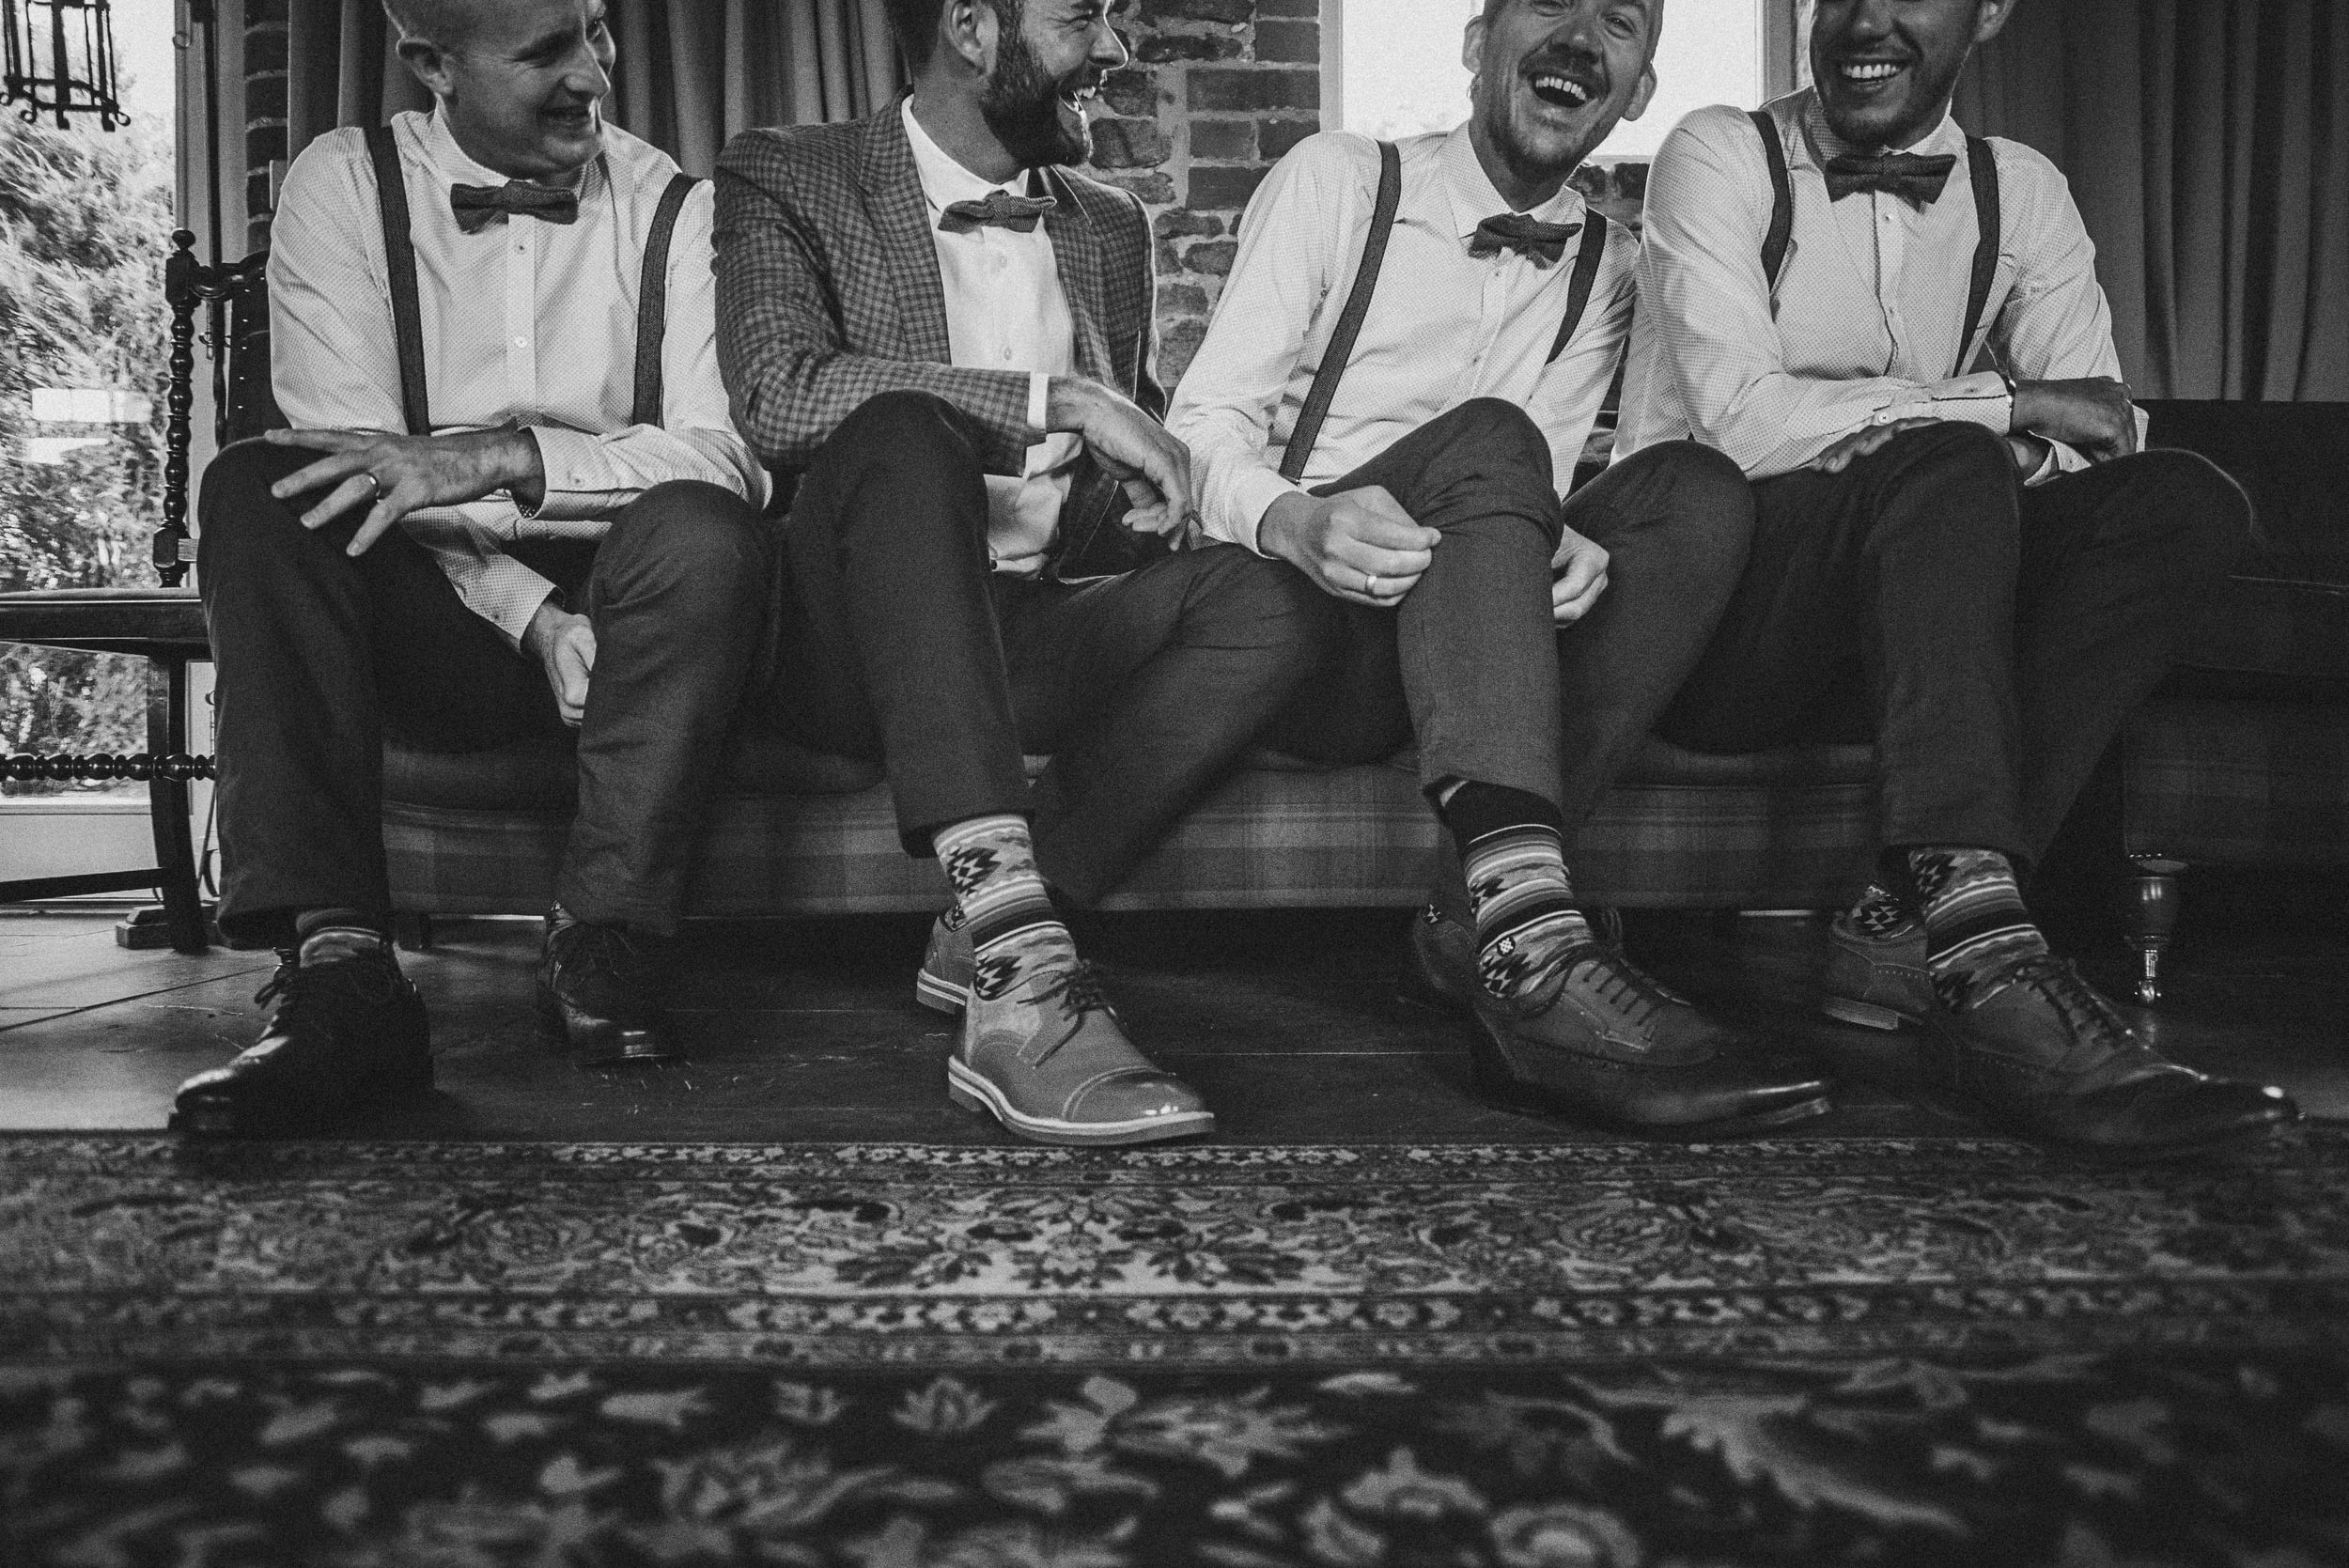 Groom & Groomsmen for Mexican Cliff Barns Norfolk Essex UK Documentary Wedding Photographer